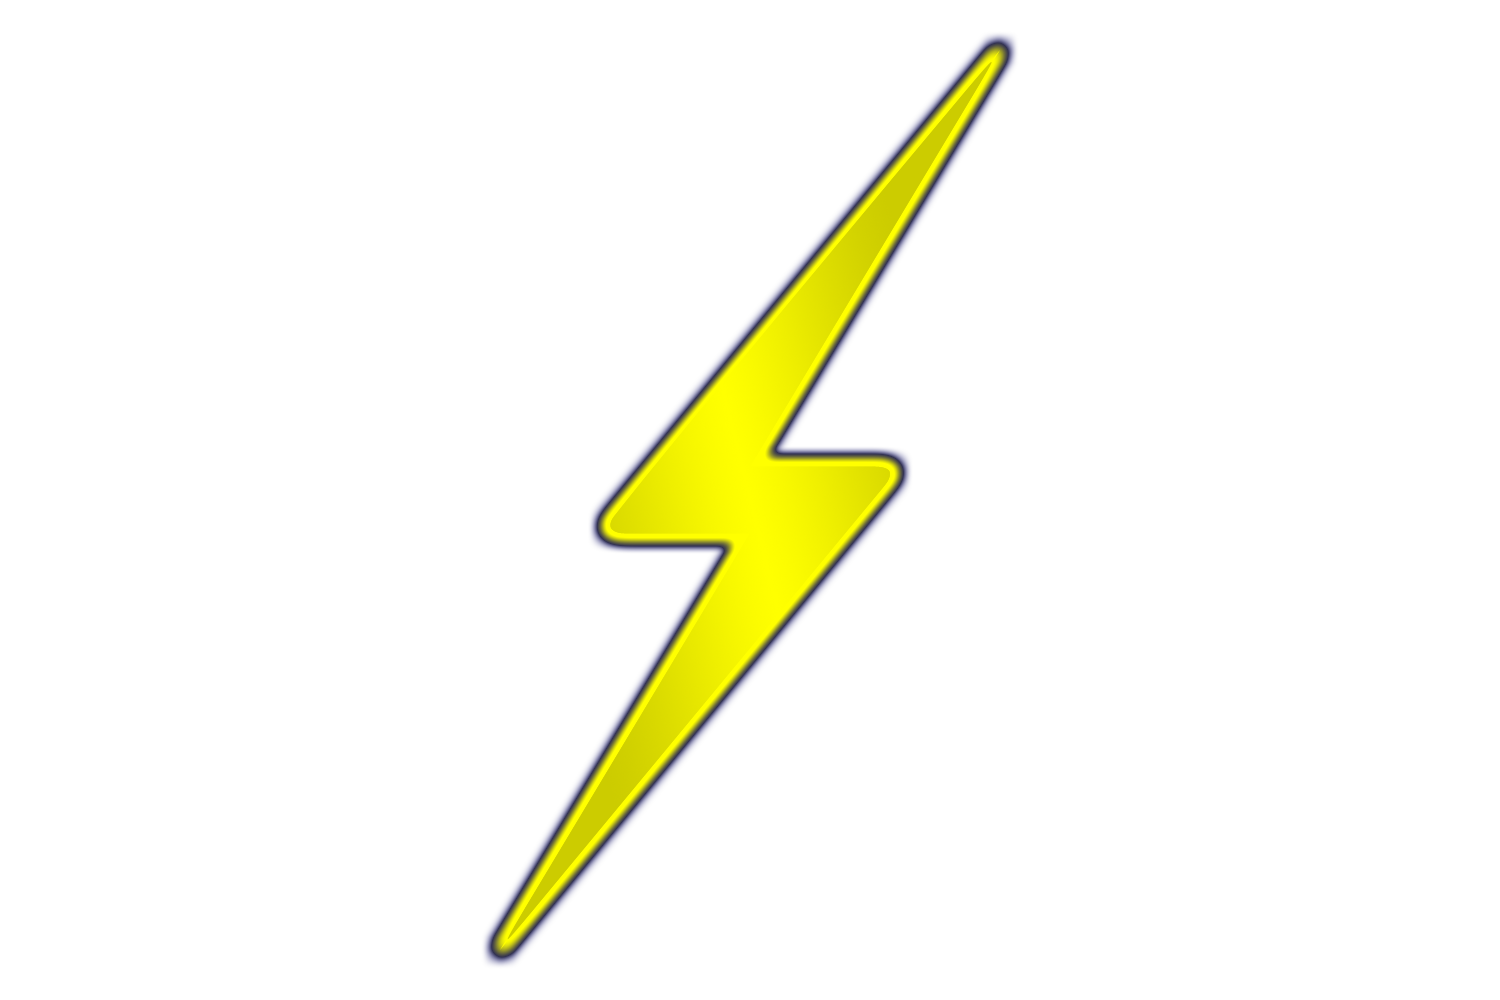 Lightning Bolt Png - ClipArt Best